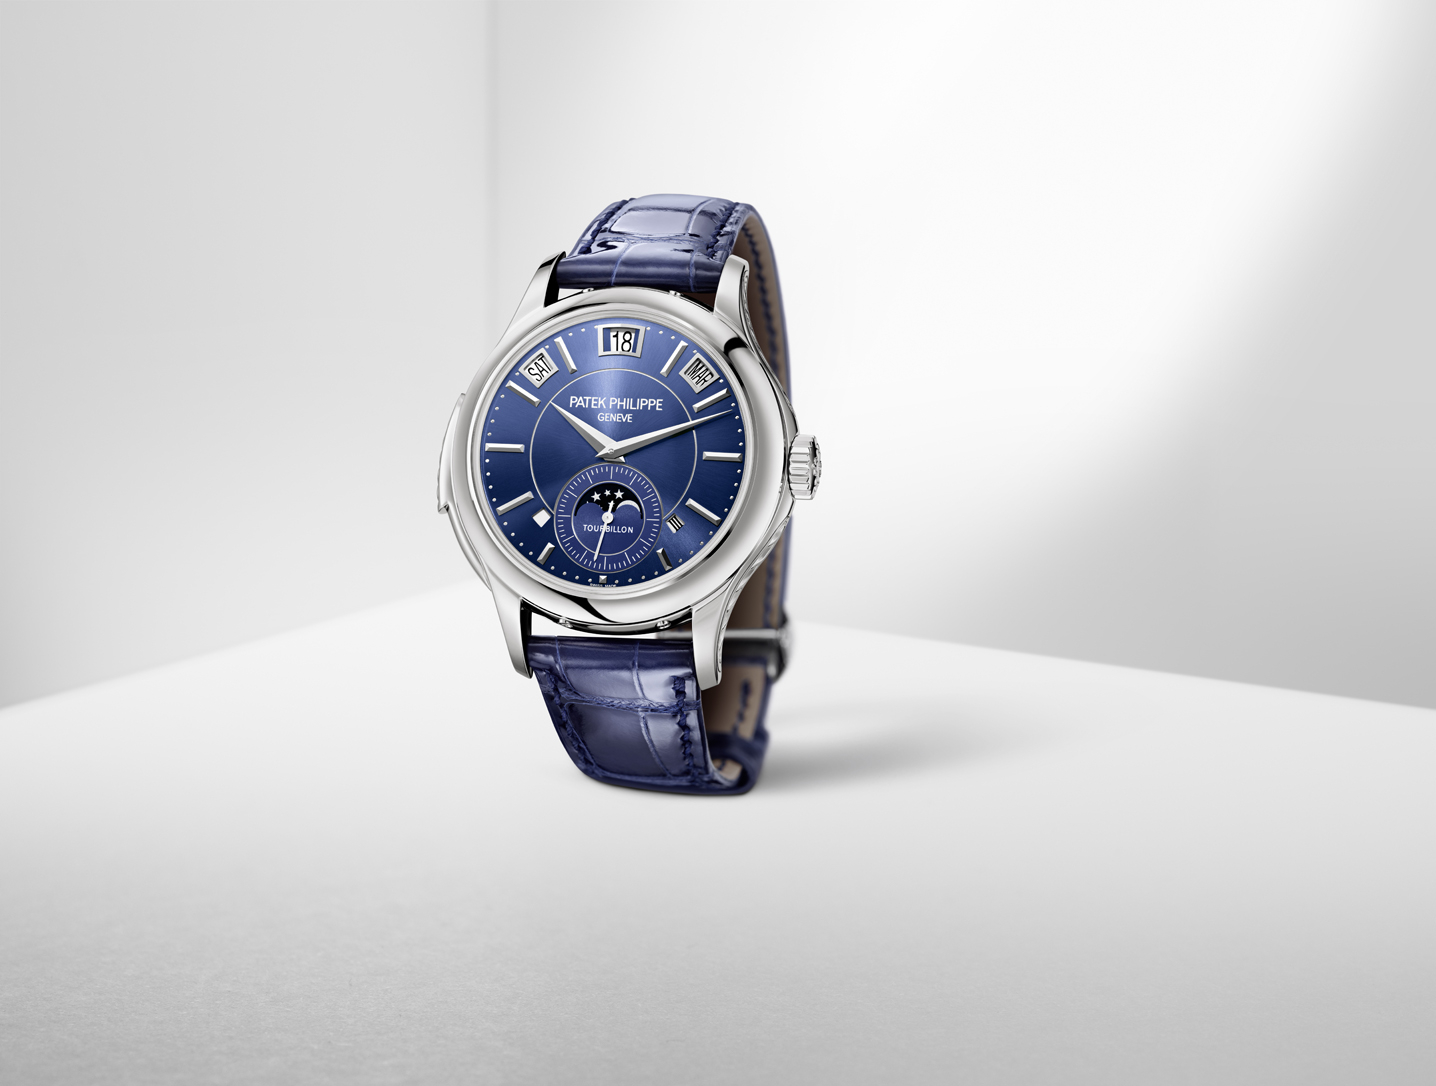 Grand Complication - 5207G-001